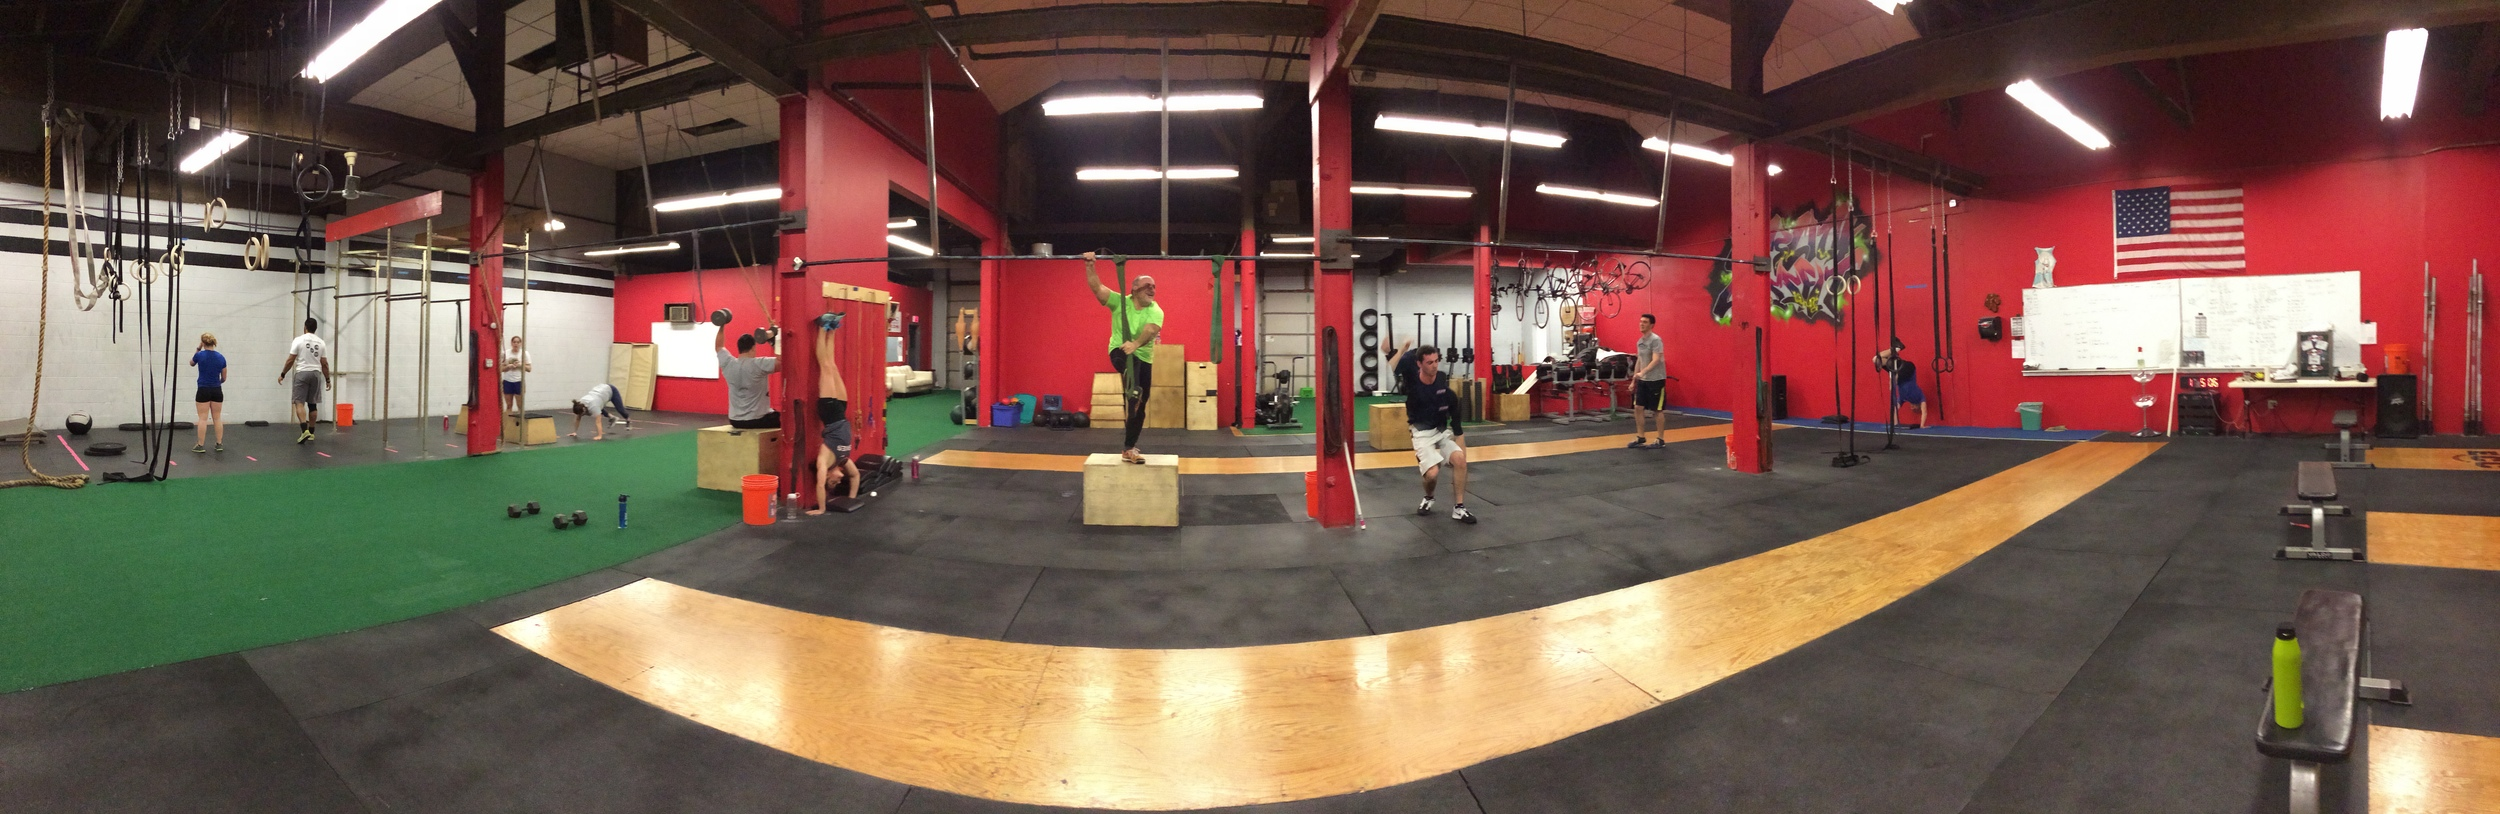 We are excited to announce we will be starting some construction this week! Dont mind our mess - the workouts must go on!